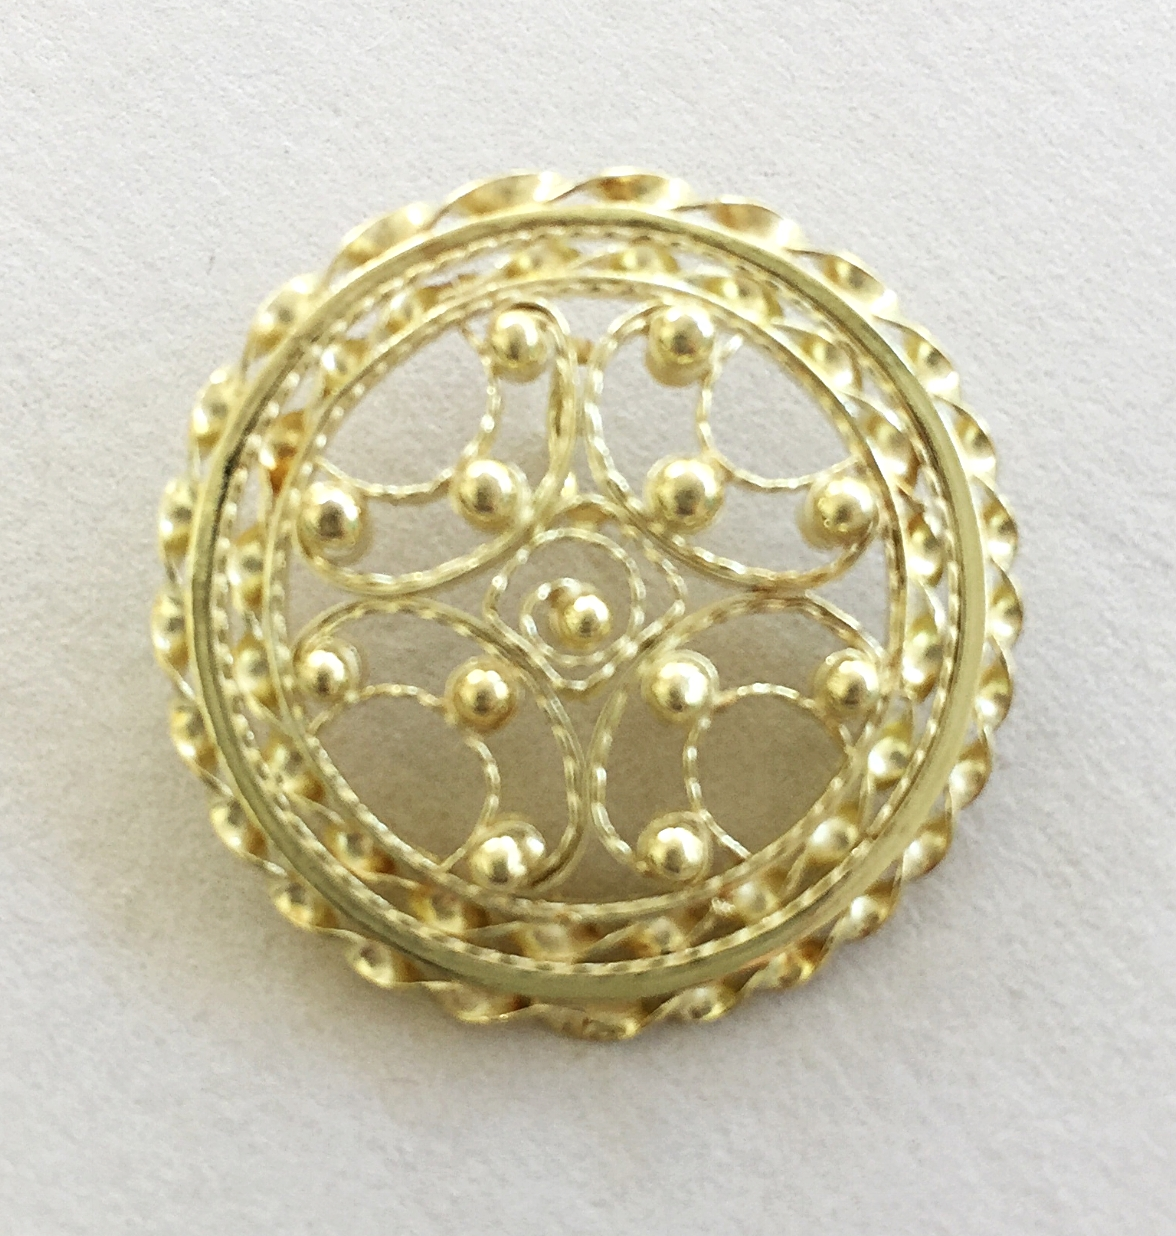 18K Gold Filigree Circular Pendant with Twisted Wire Border and Balls